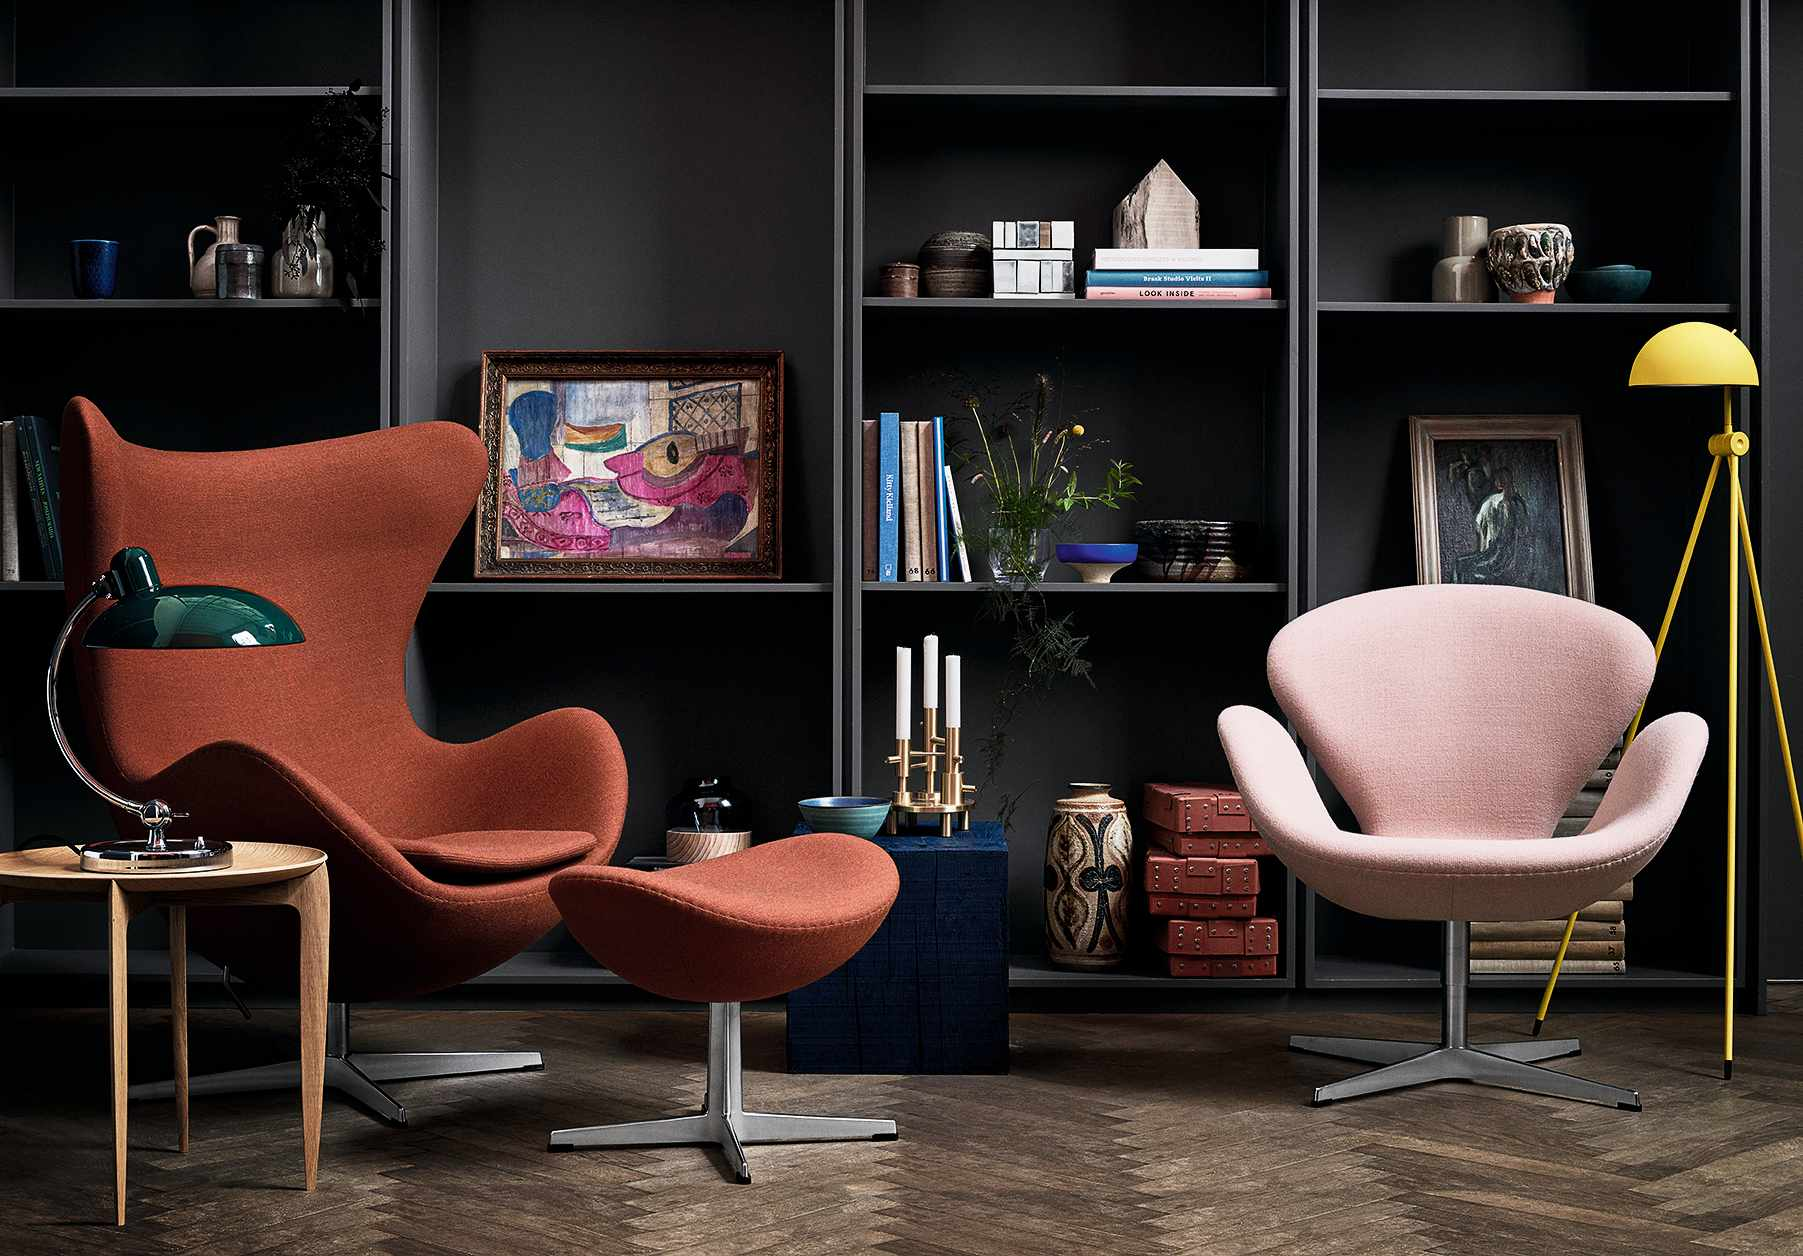 Arne Jacobsen's Swan and Egg chairs in a mid-century living room